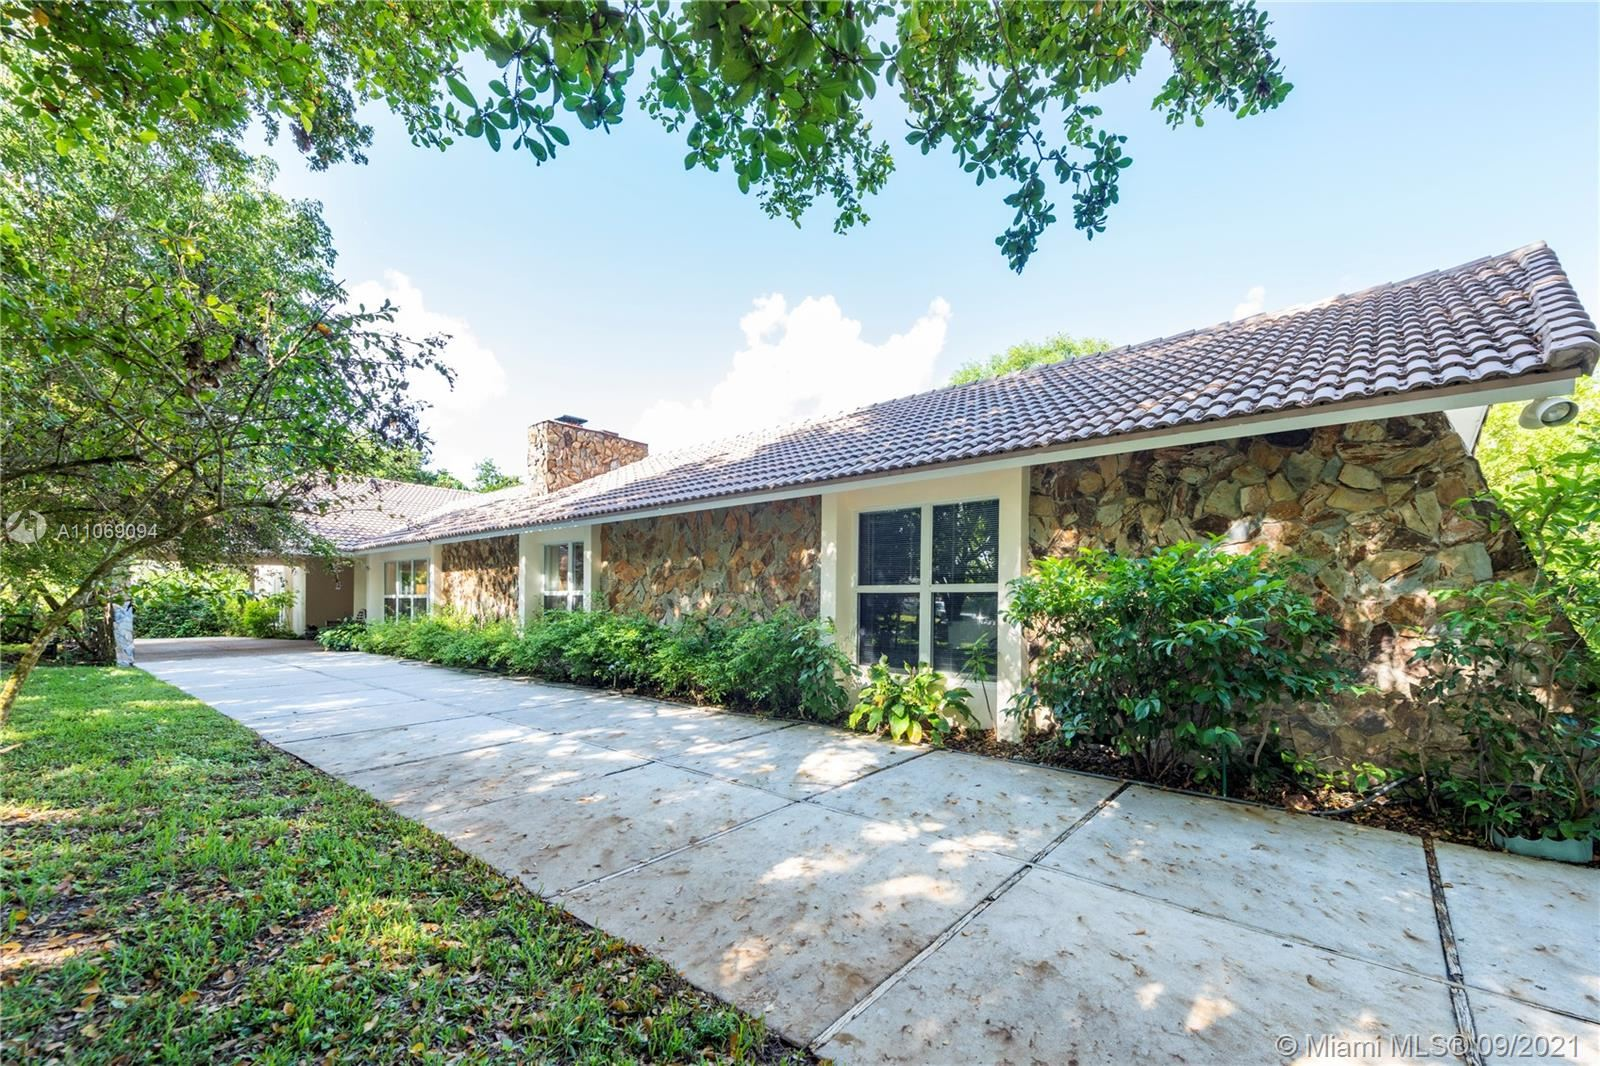 4020 NW 101st Dr, Coral Springs, FL 33065 - #: A11069094